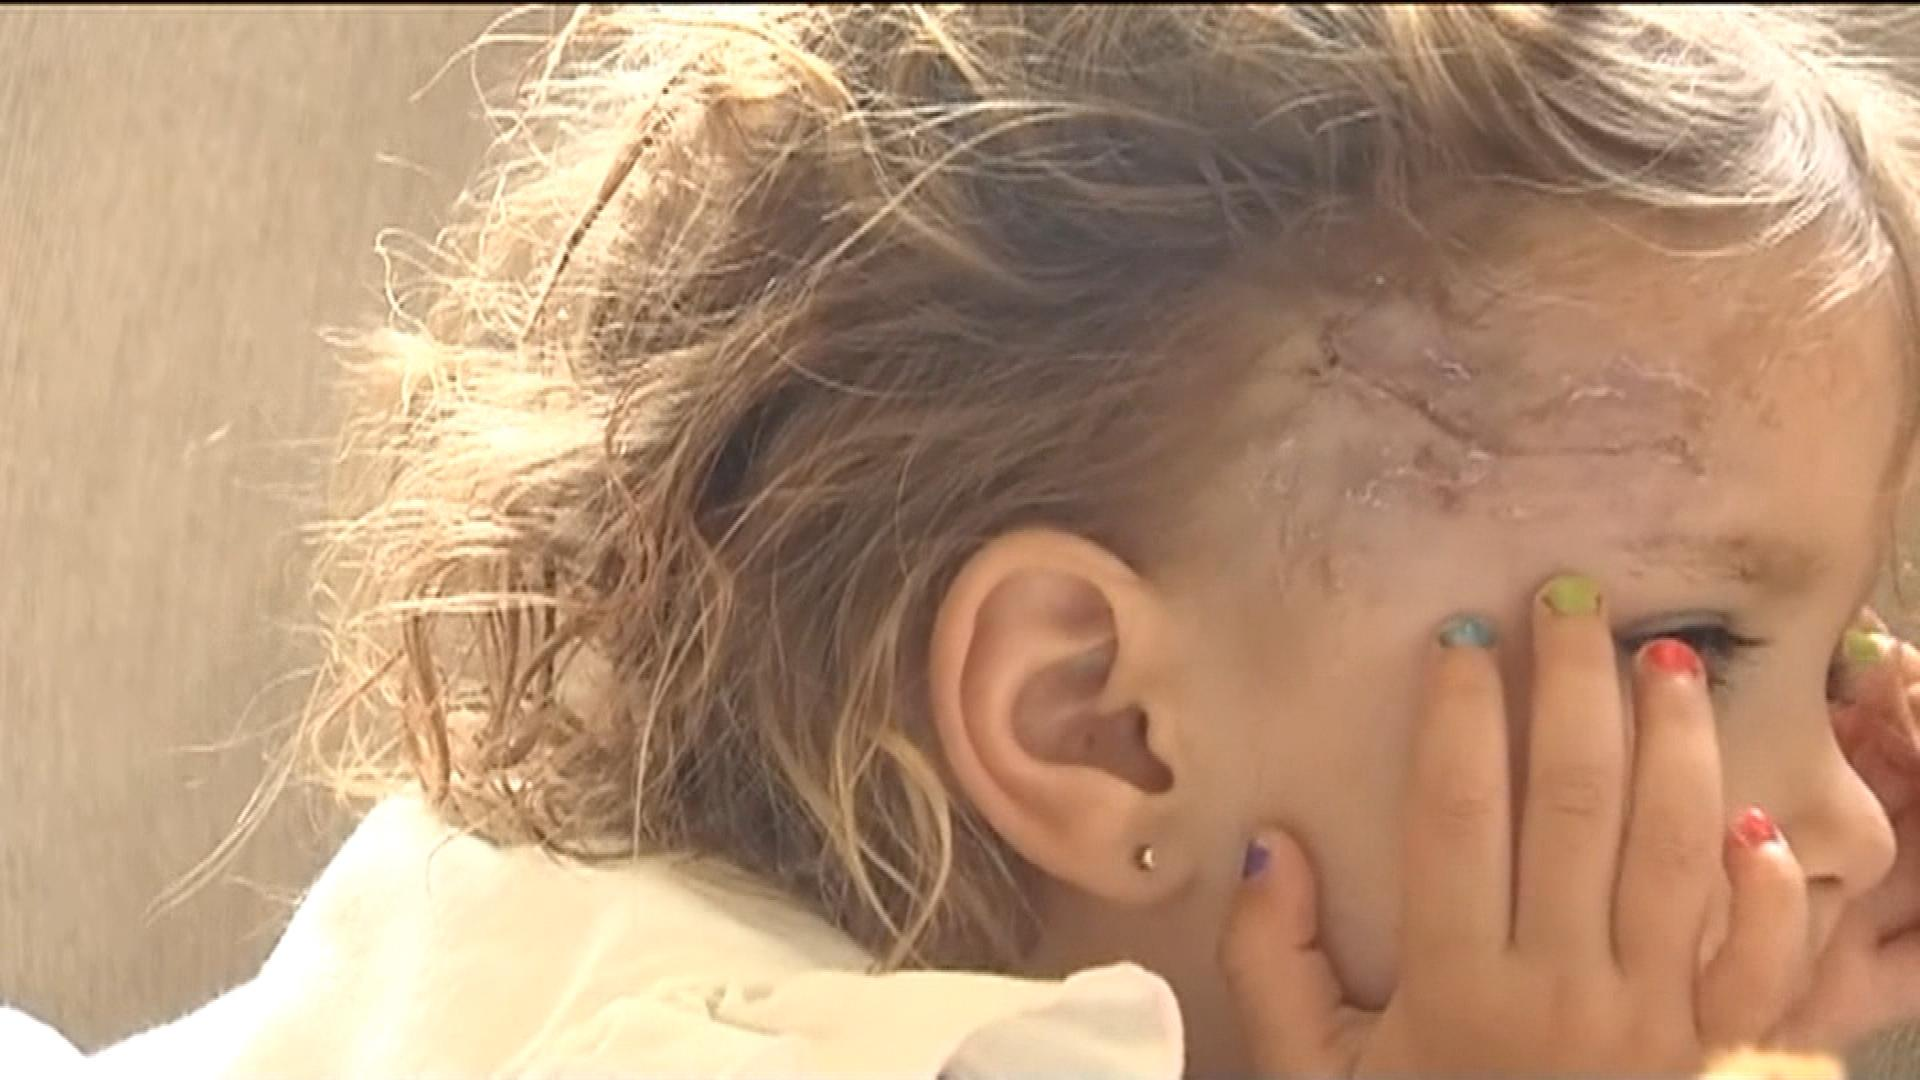 Injuries to the 2-year-old who was attacked by a coyote (credit: CBS)